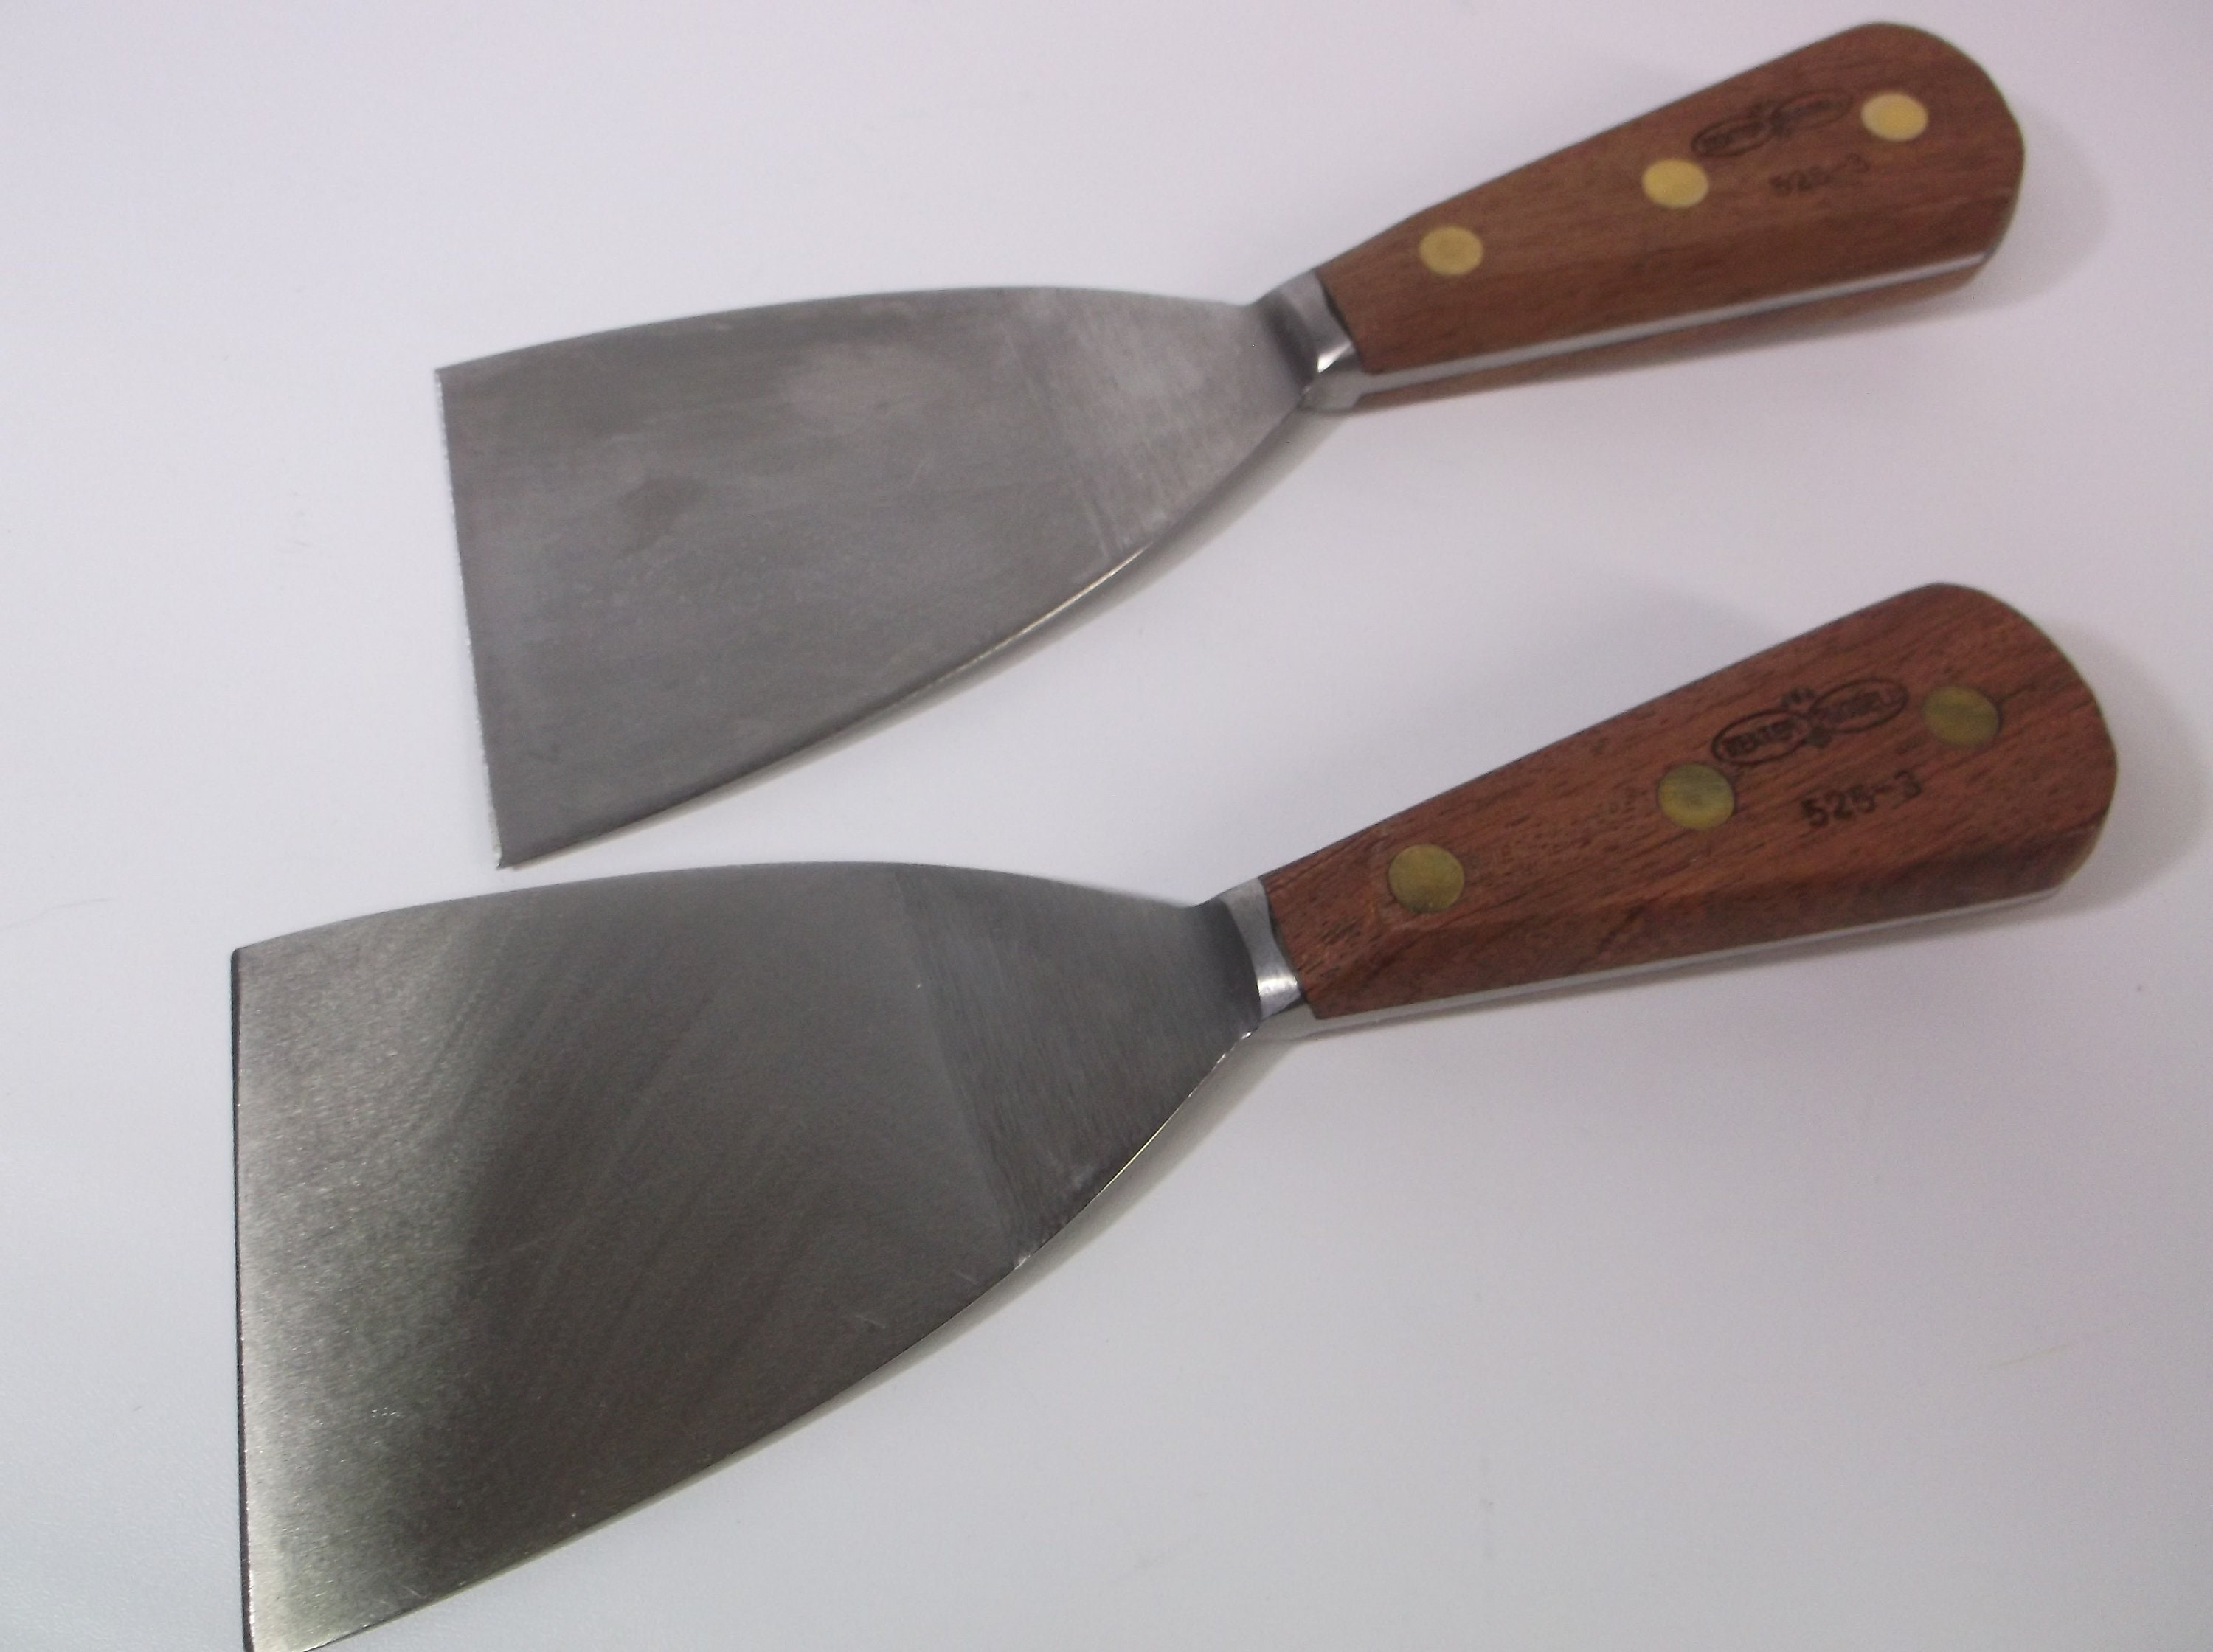 Dexter 4in Grill Scraper Forged Angled Blade Bolster #525-4 Wood Handl Factory#2